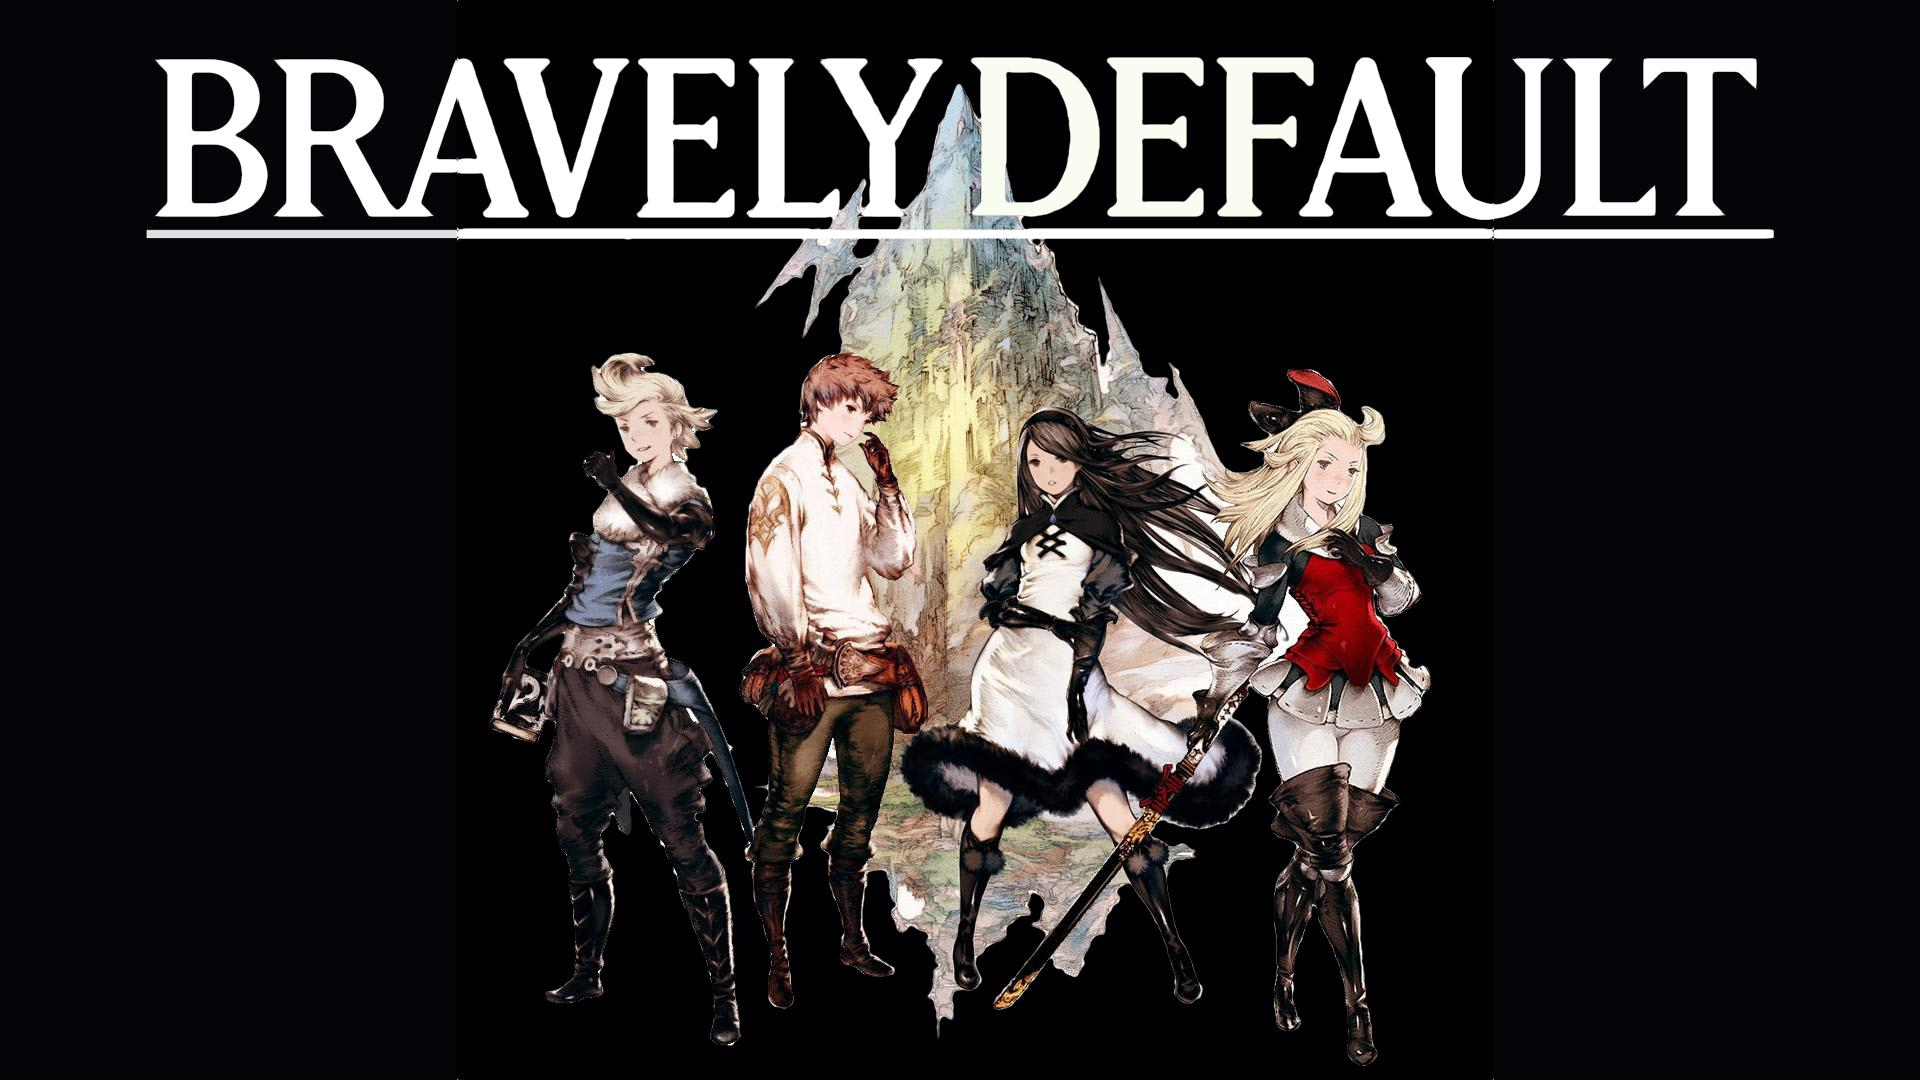 Videogame Wallpapers With Quotes 4 Bravely Default Hd Wallpapers Backgrounds Wallpaper